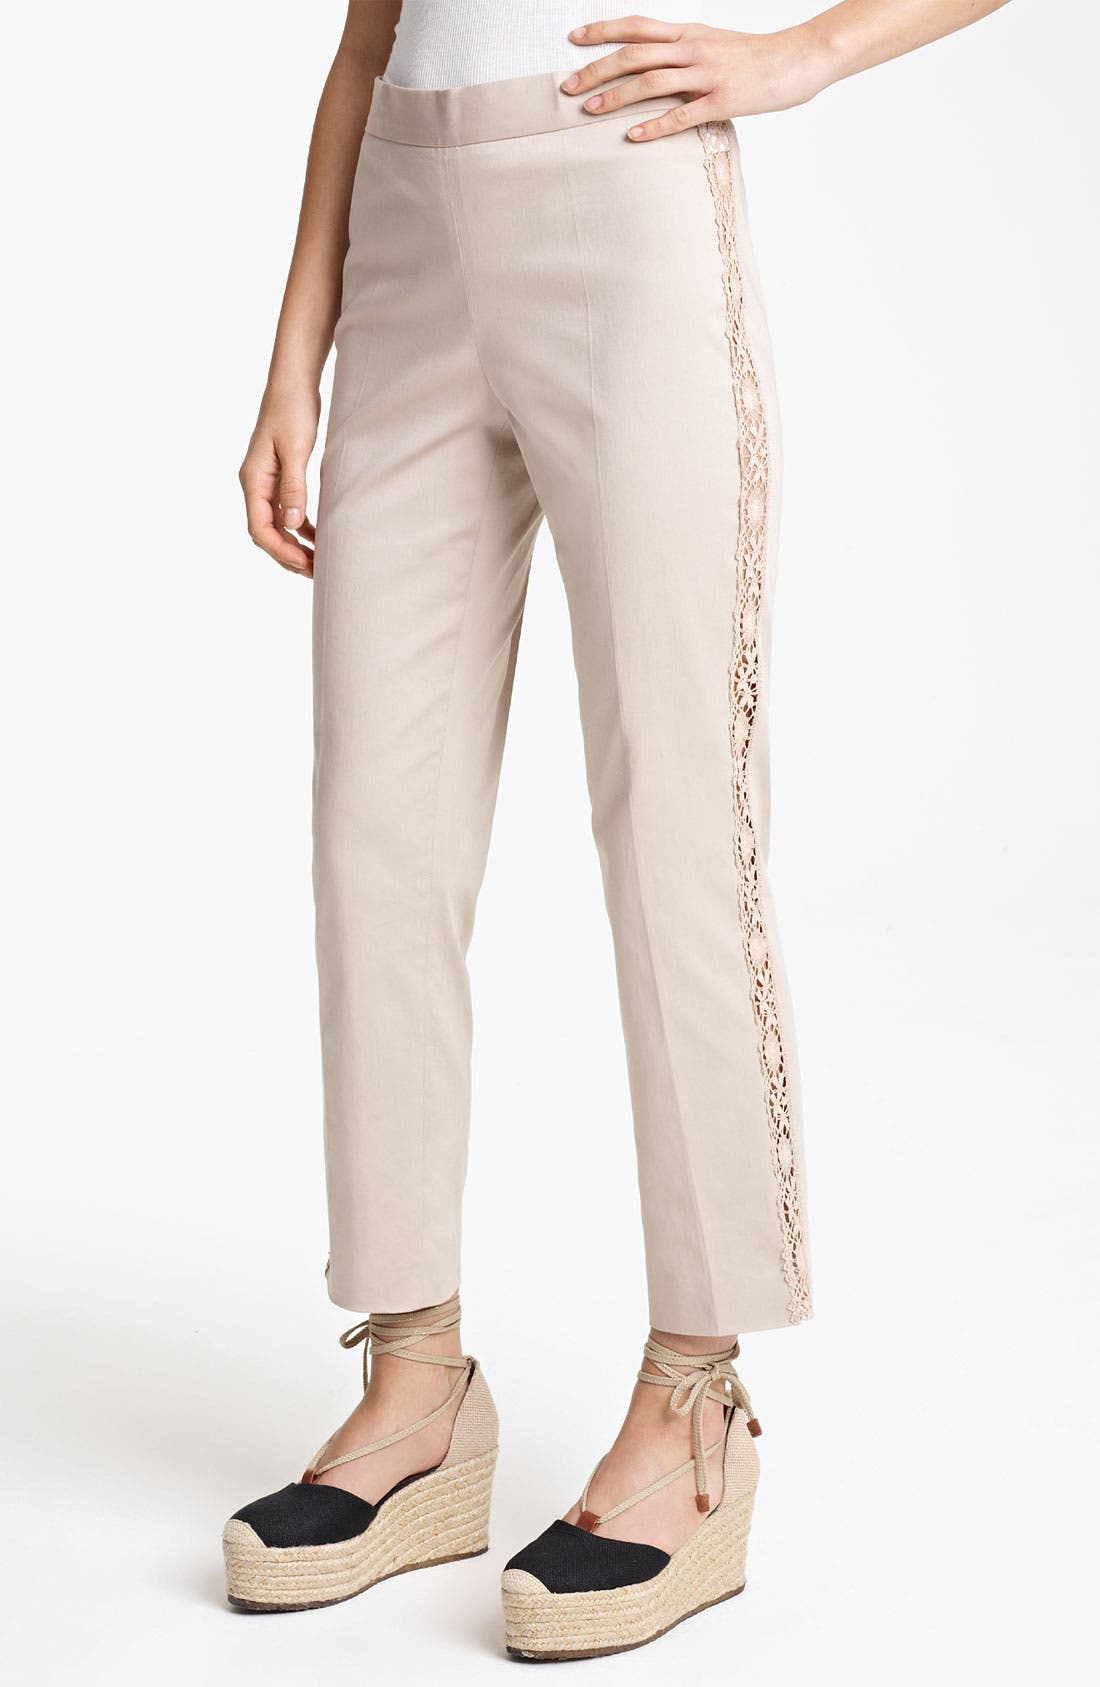 Alternate Image 1 Selected - Jean Paul Gaultier Lace Detail Stretch Gabardine Pants